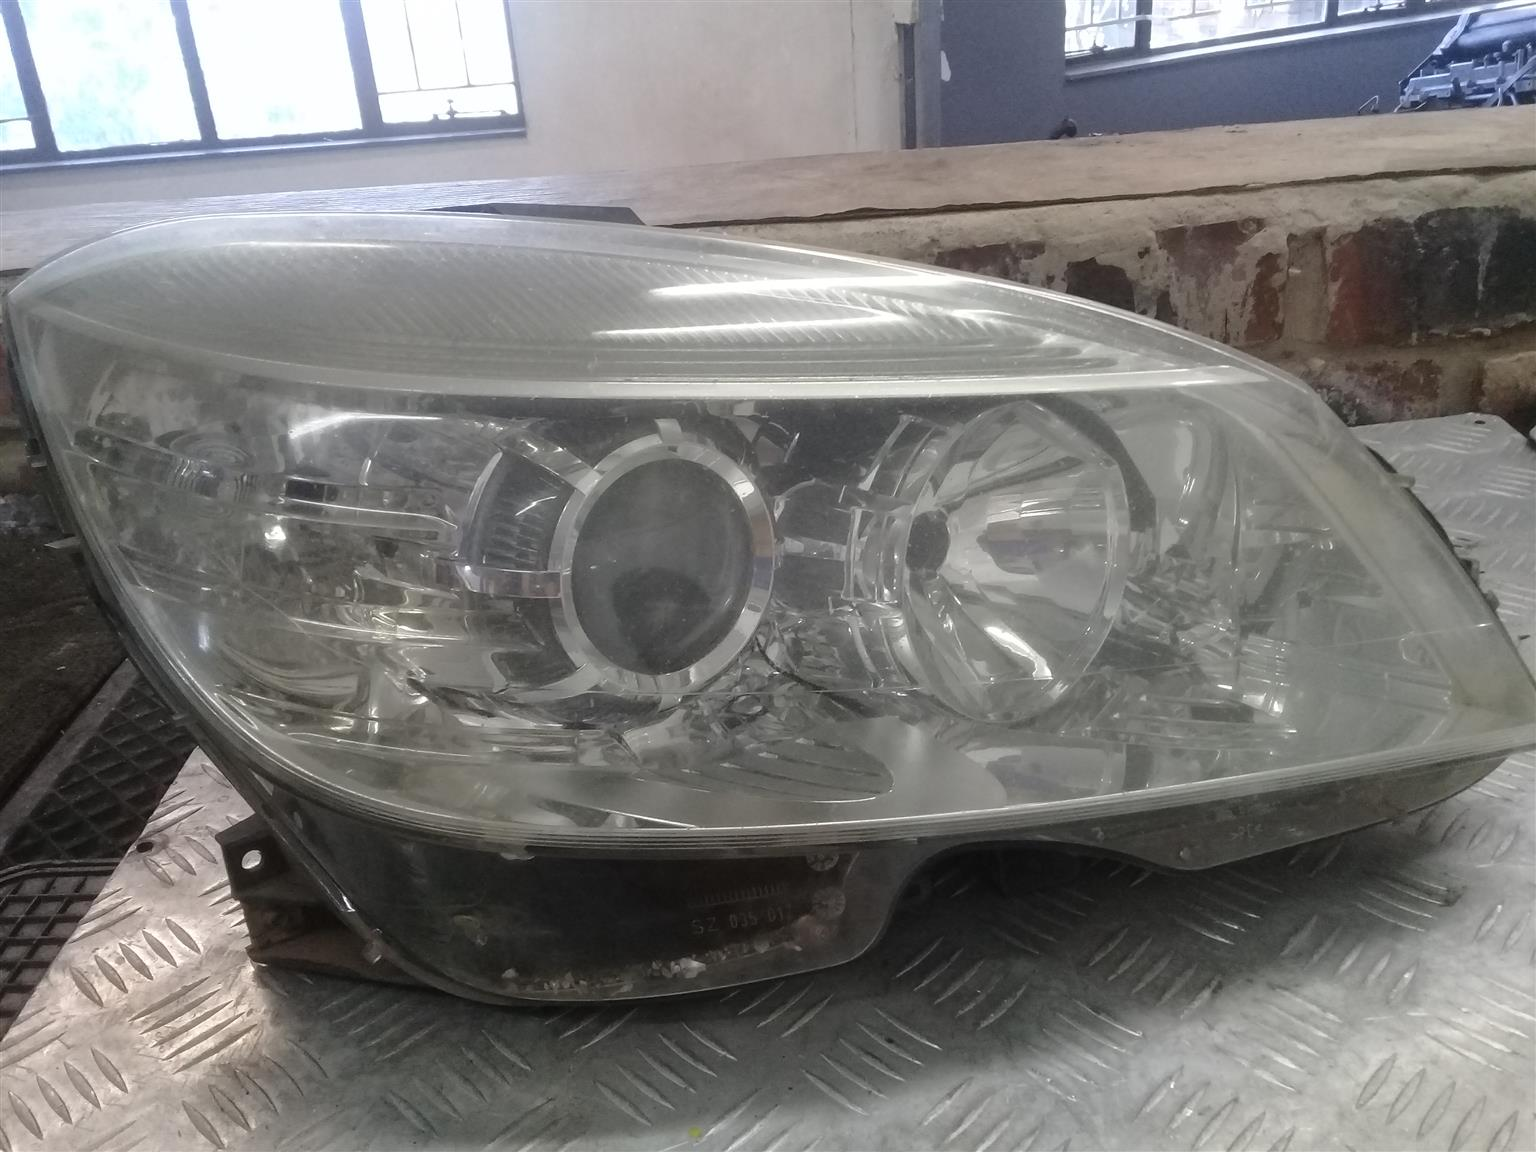 NEW AND USED PARTS FOR ALL MERCEDES BENZ